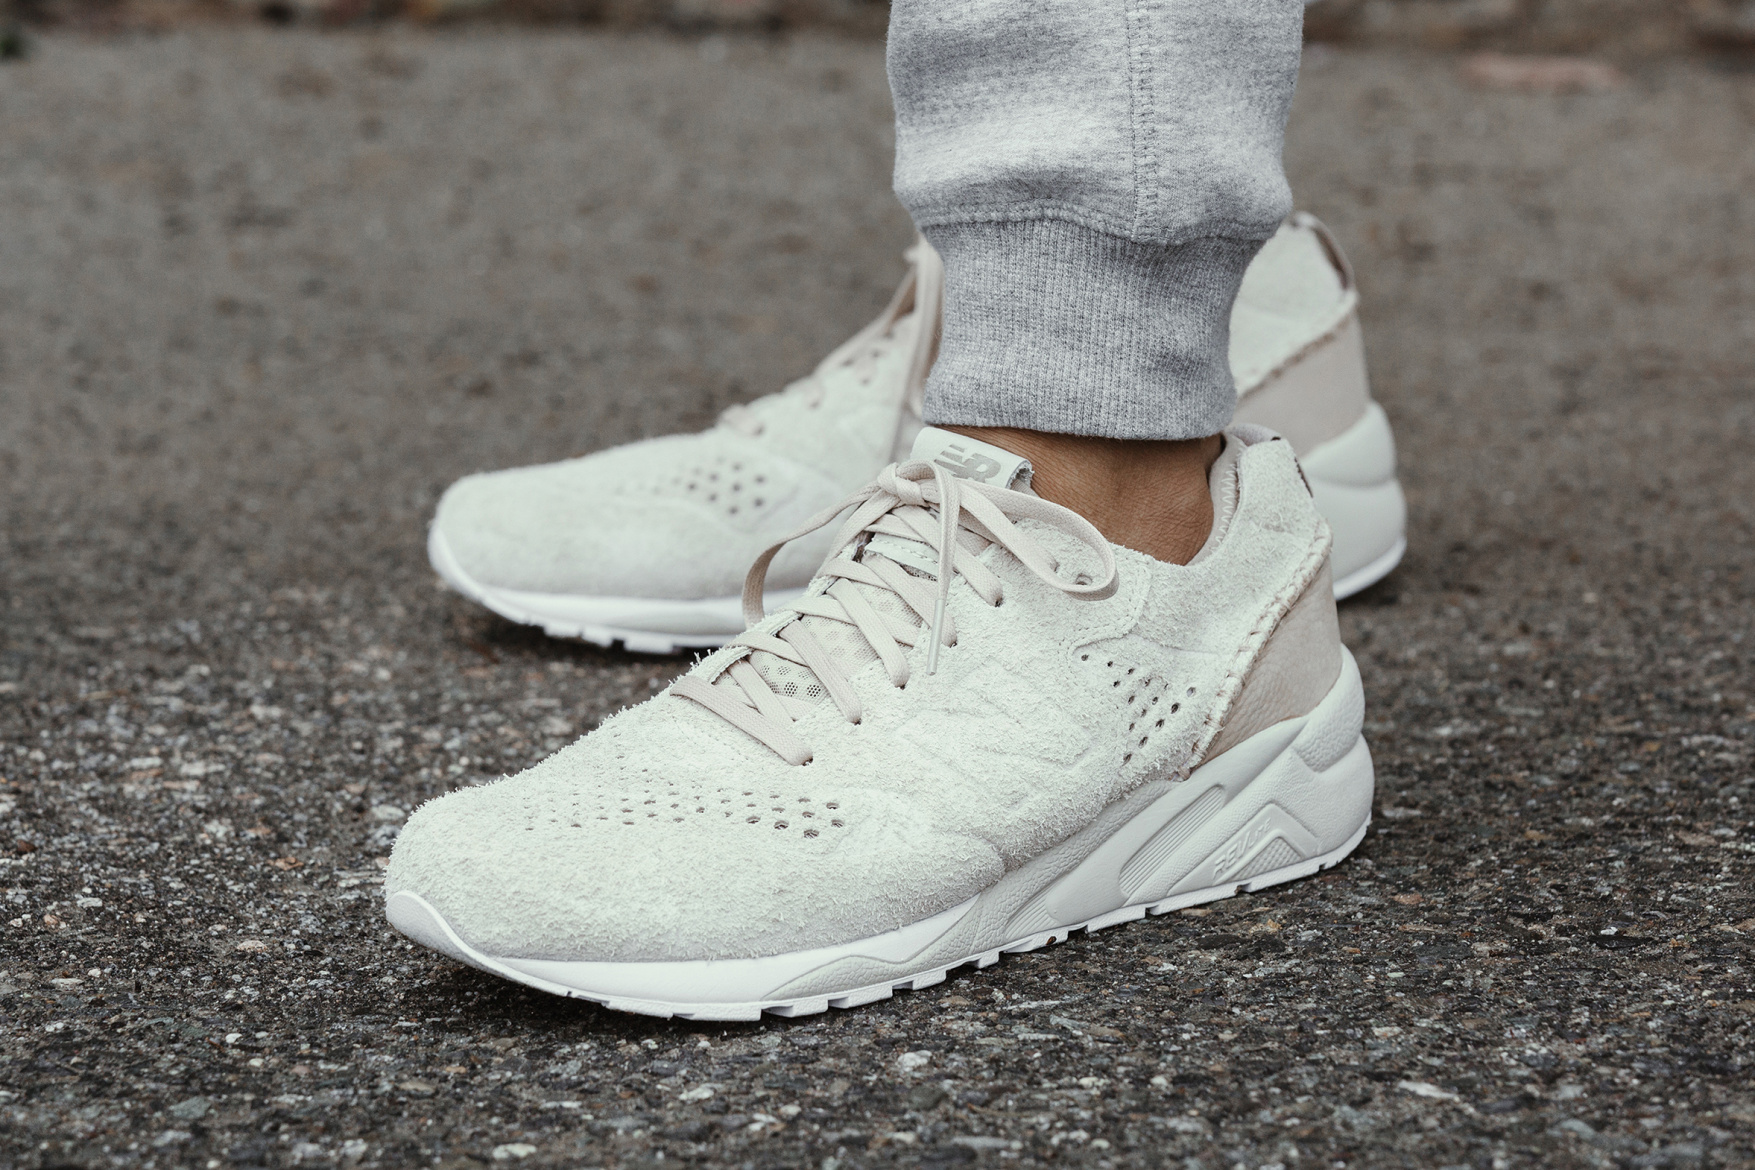 buy online c54bf d285c Release Date: wings + horns x New Balance 580 Deconstructed ...